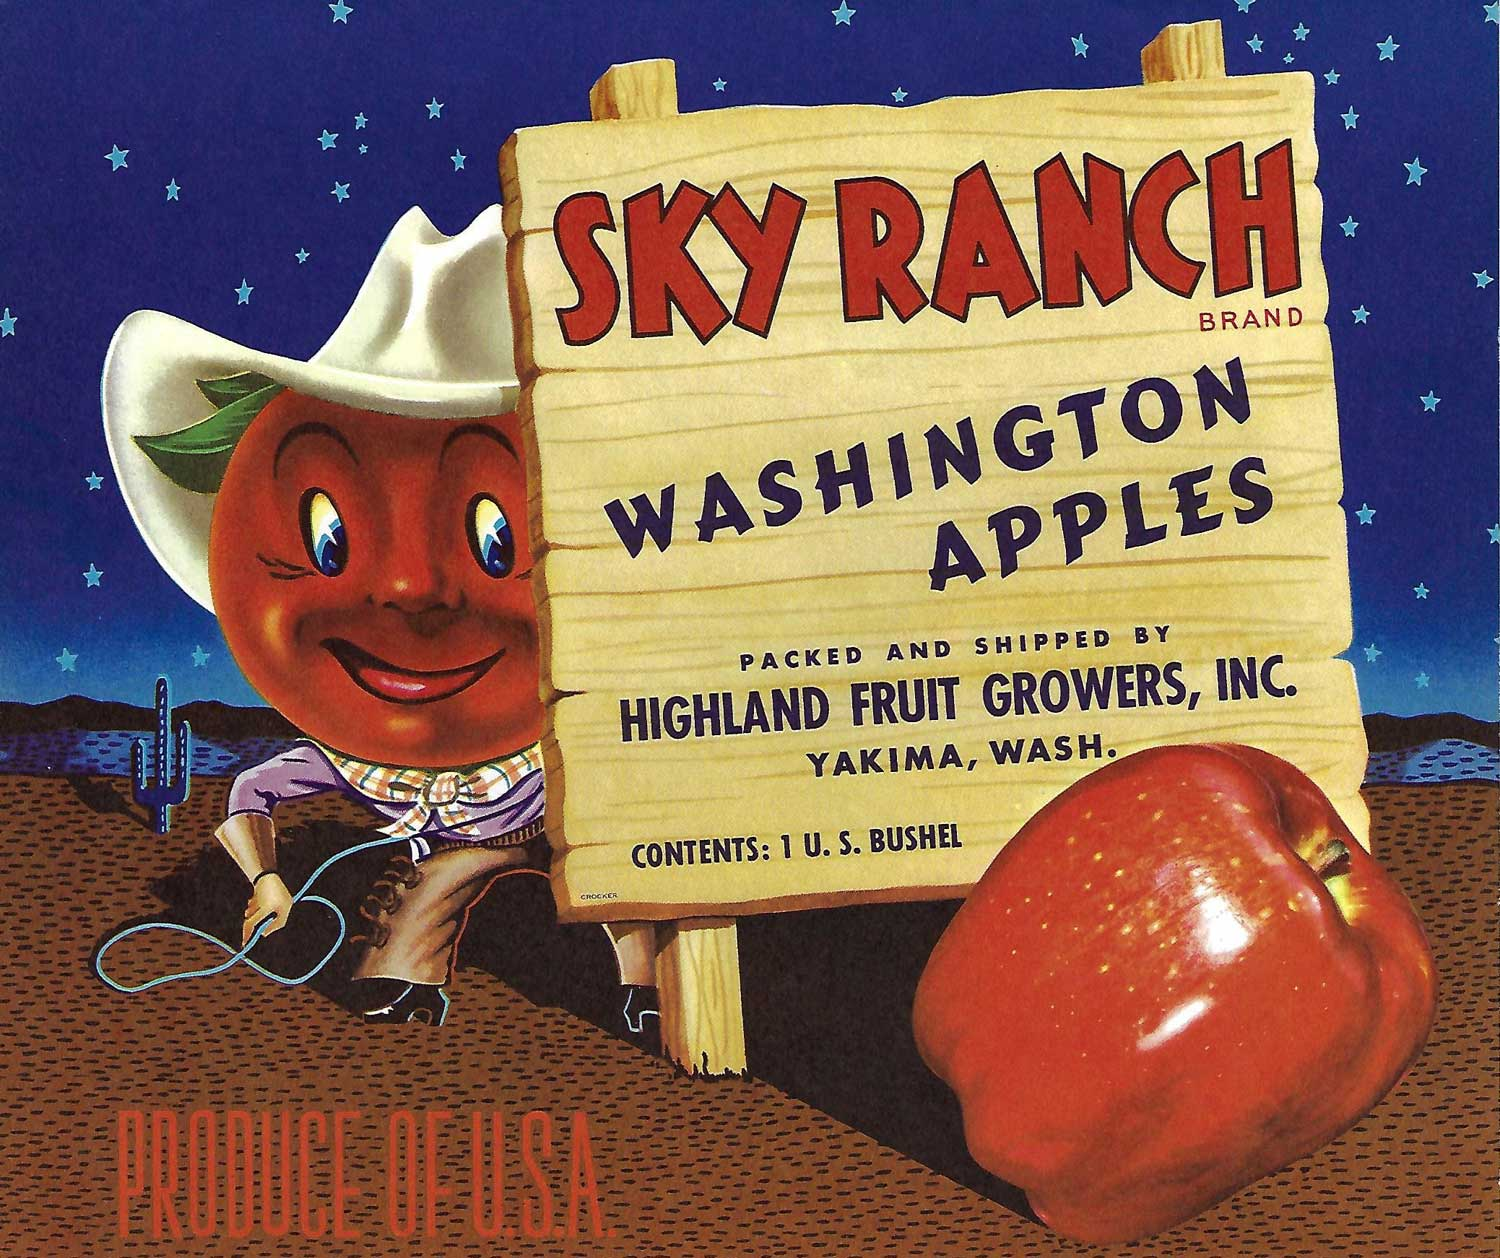 Sky Ranch Brand, Original Apple Crate Label, Circa 1950's, 10.5 x 8.75